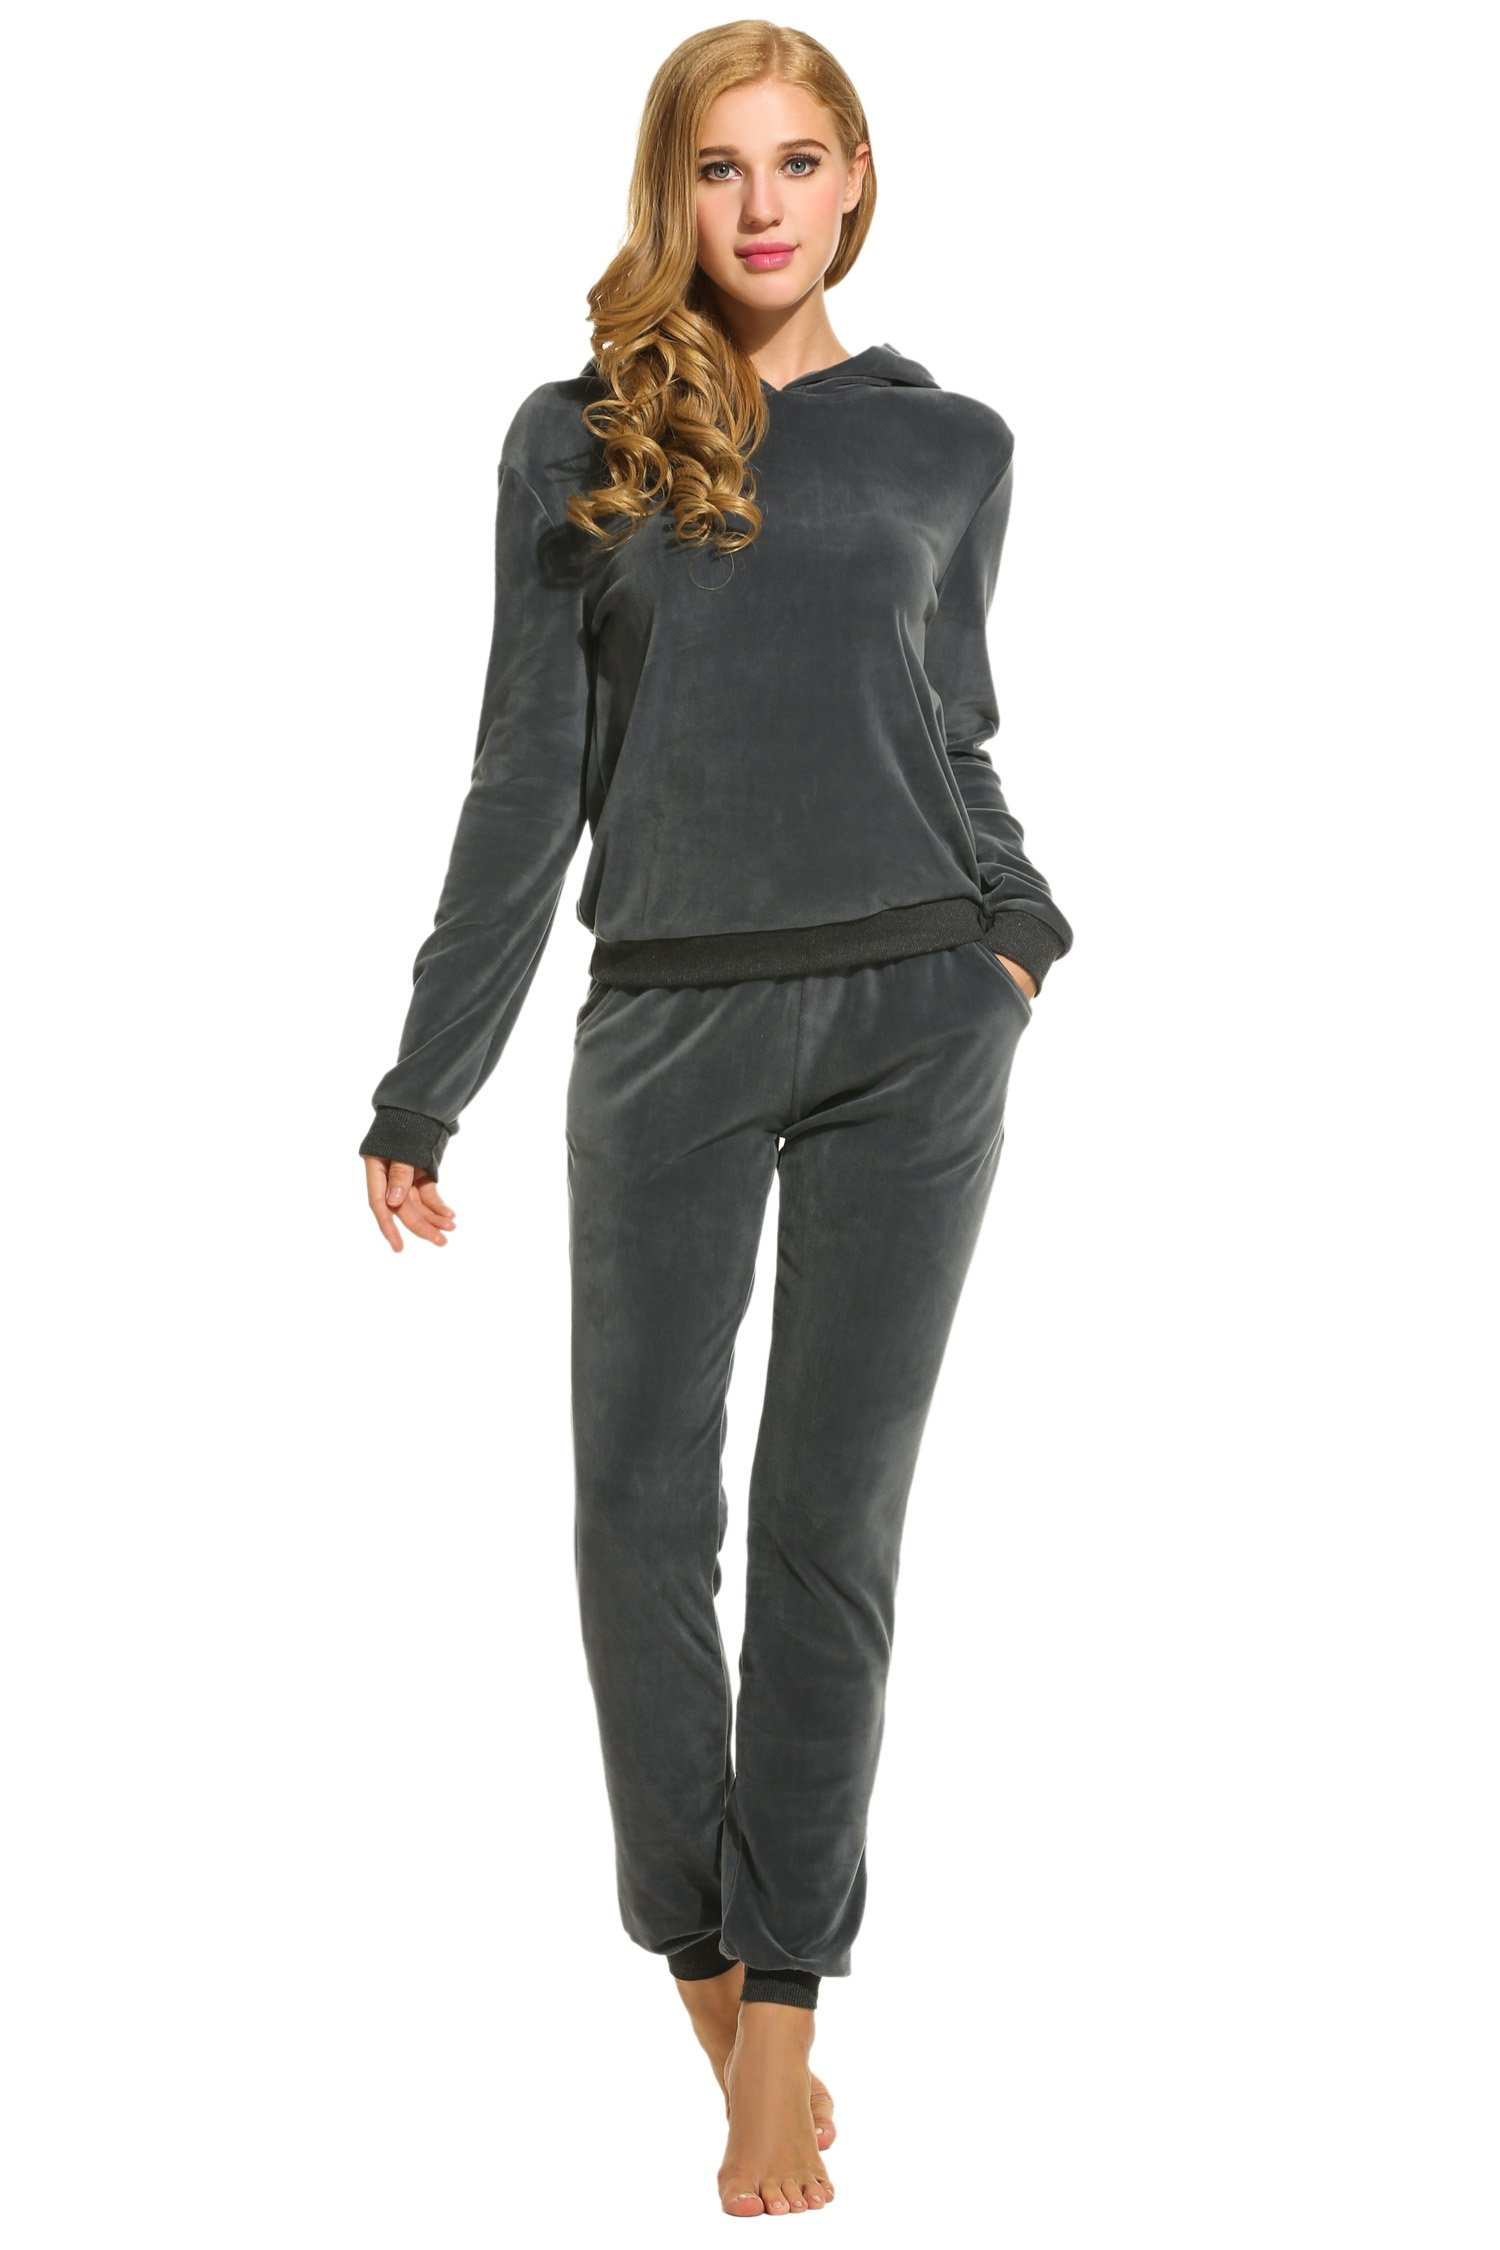 Hotouch Womens Velour Suit Set Soft Track Suit Charcoal L